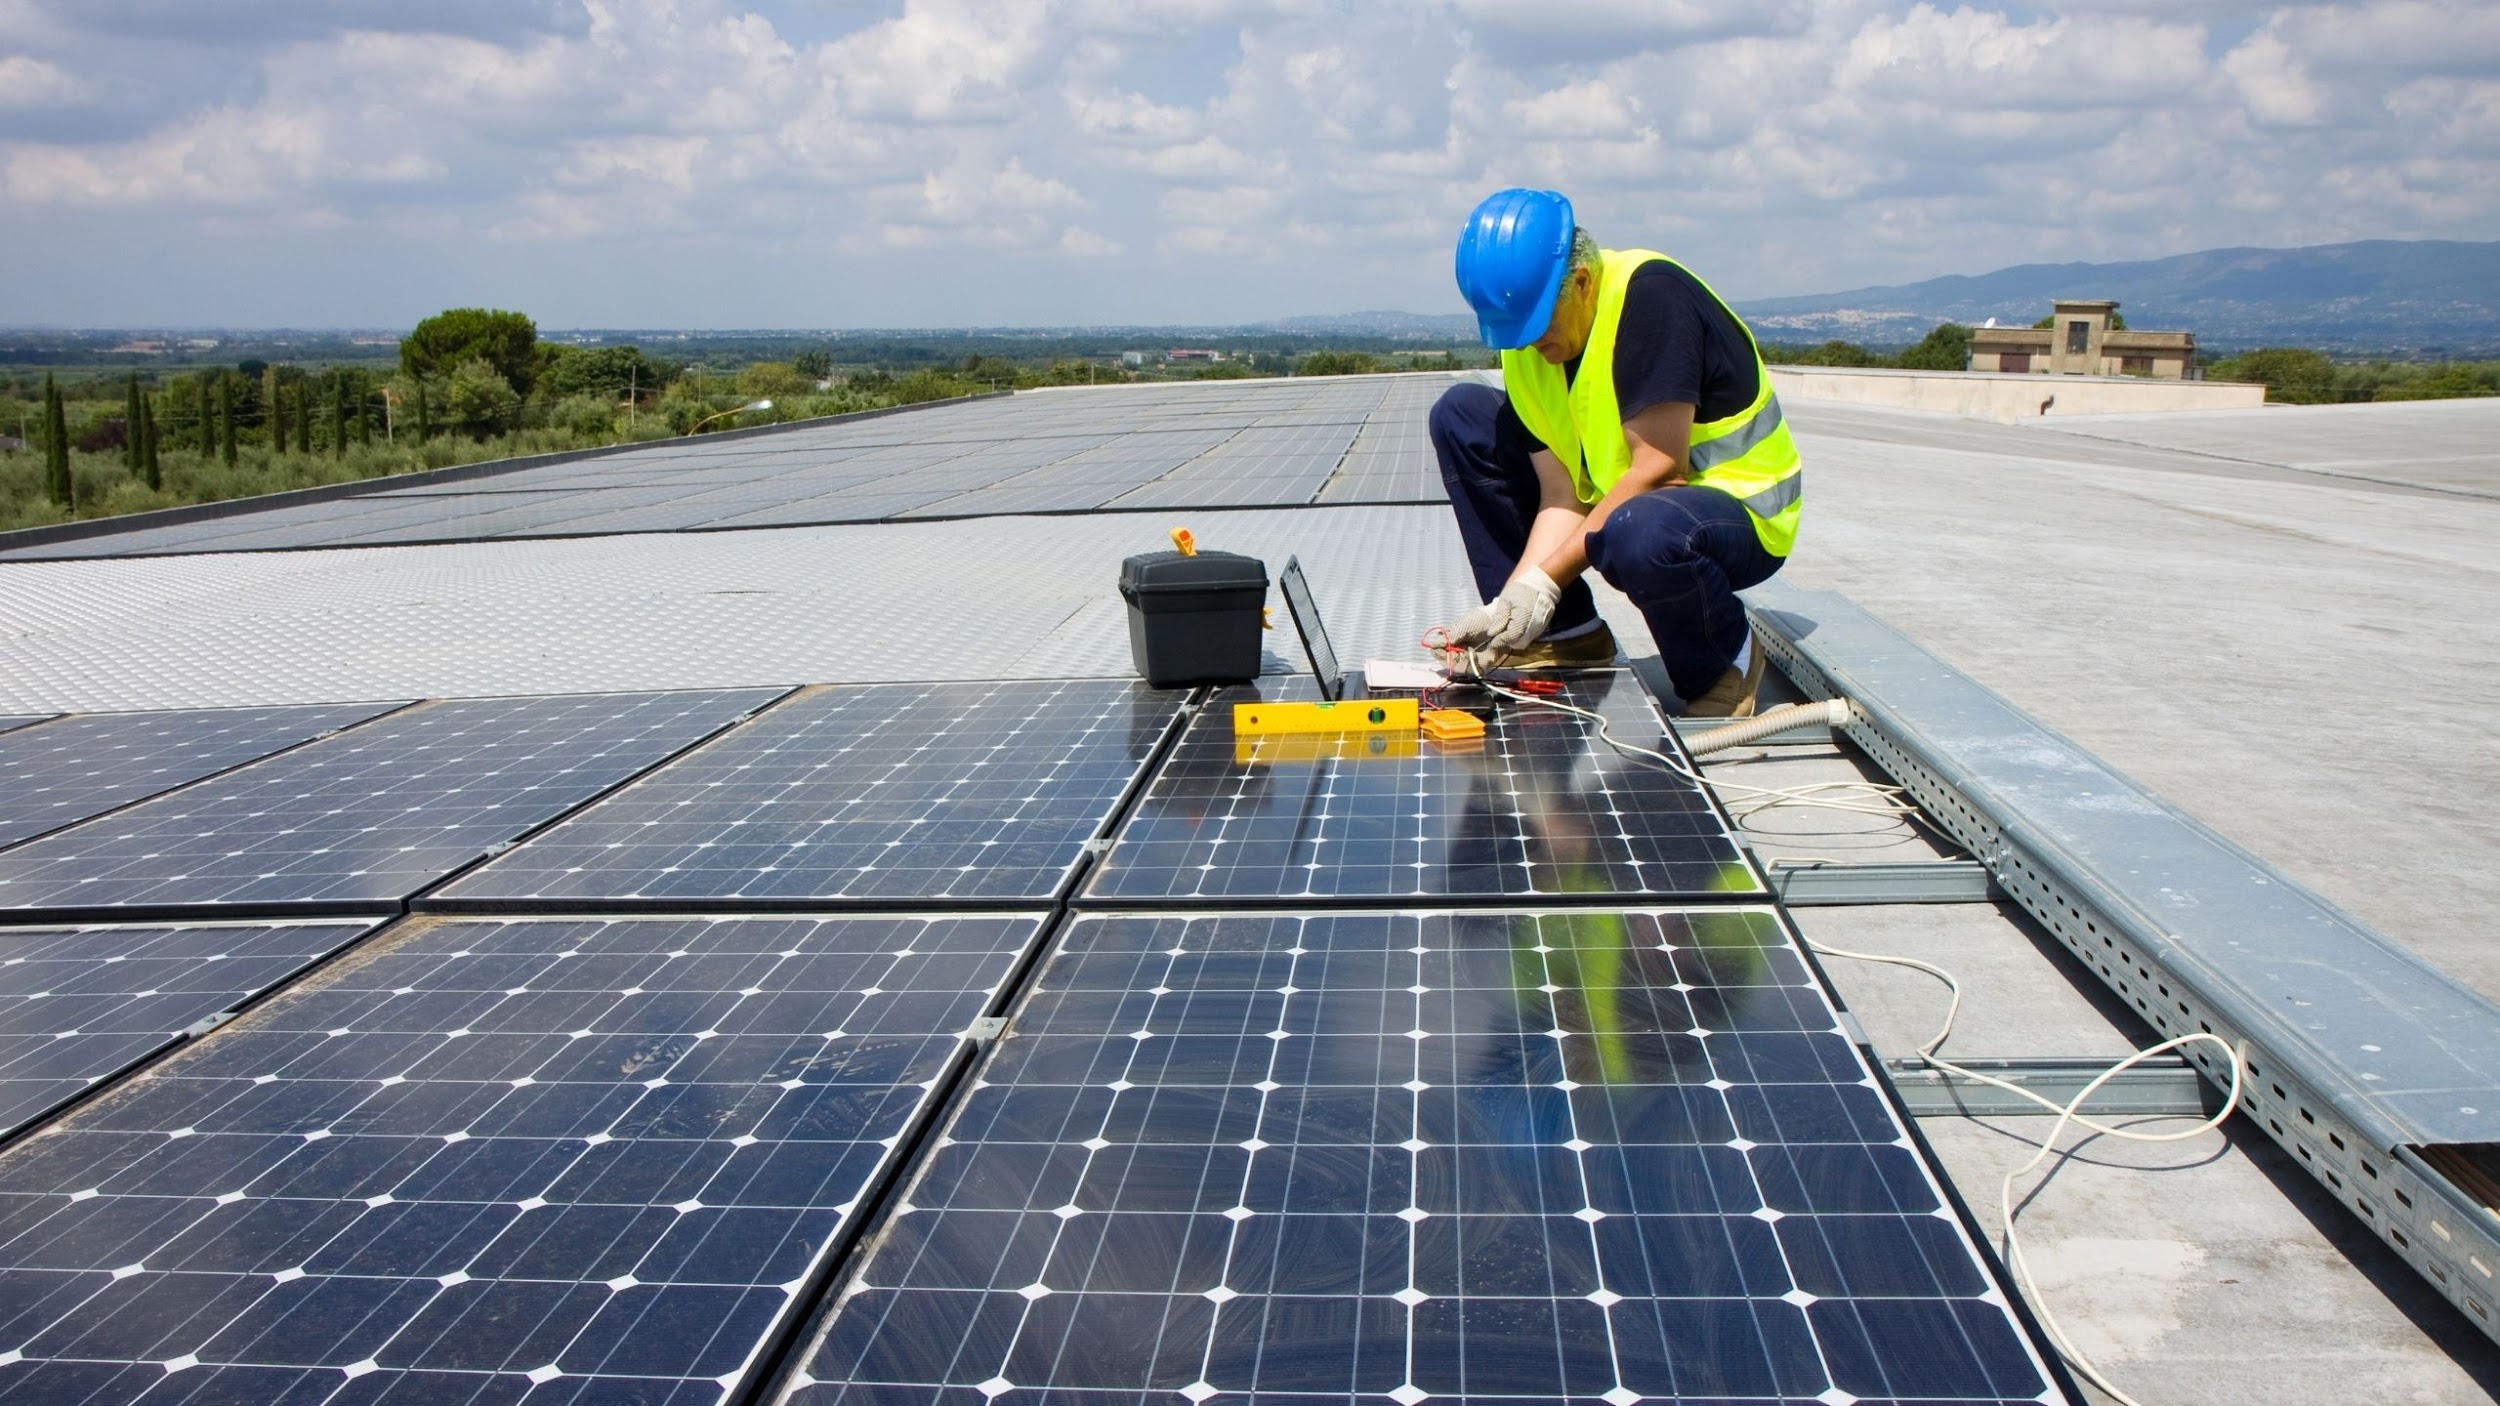 trades people and solar installers